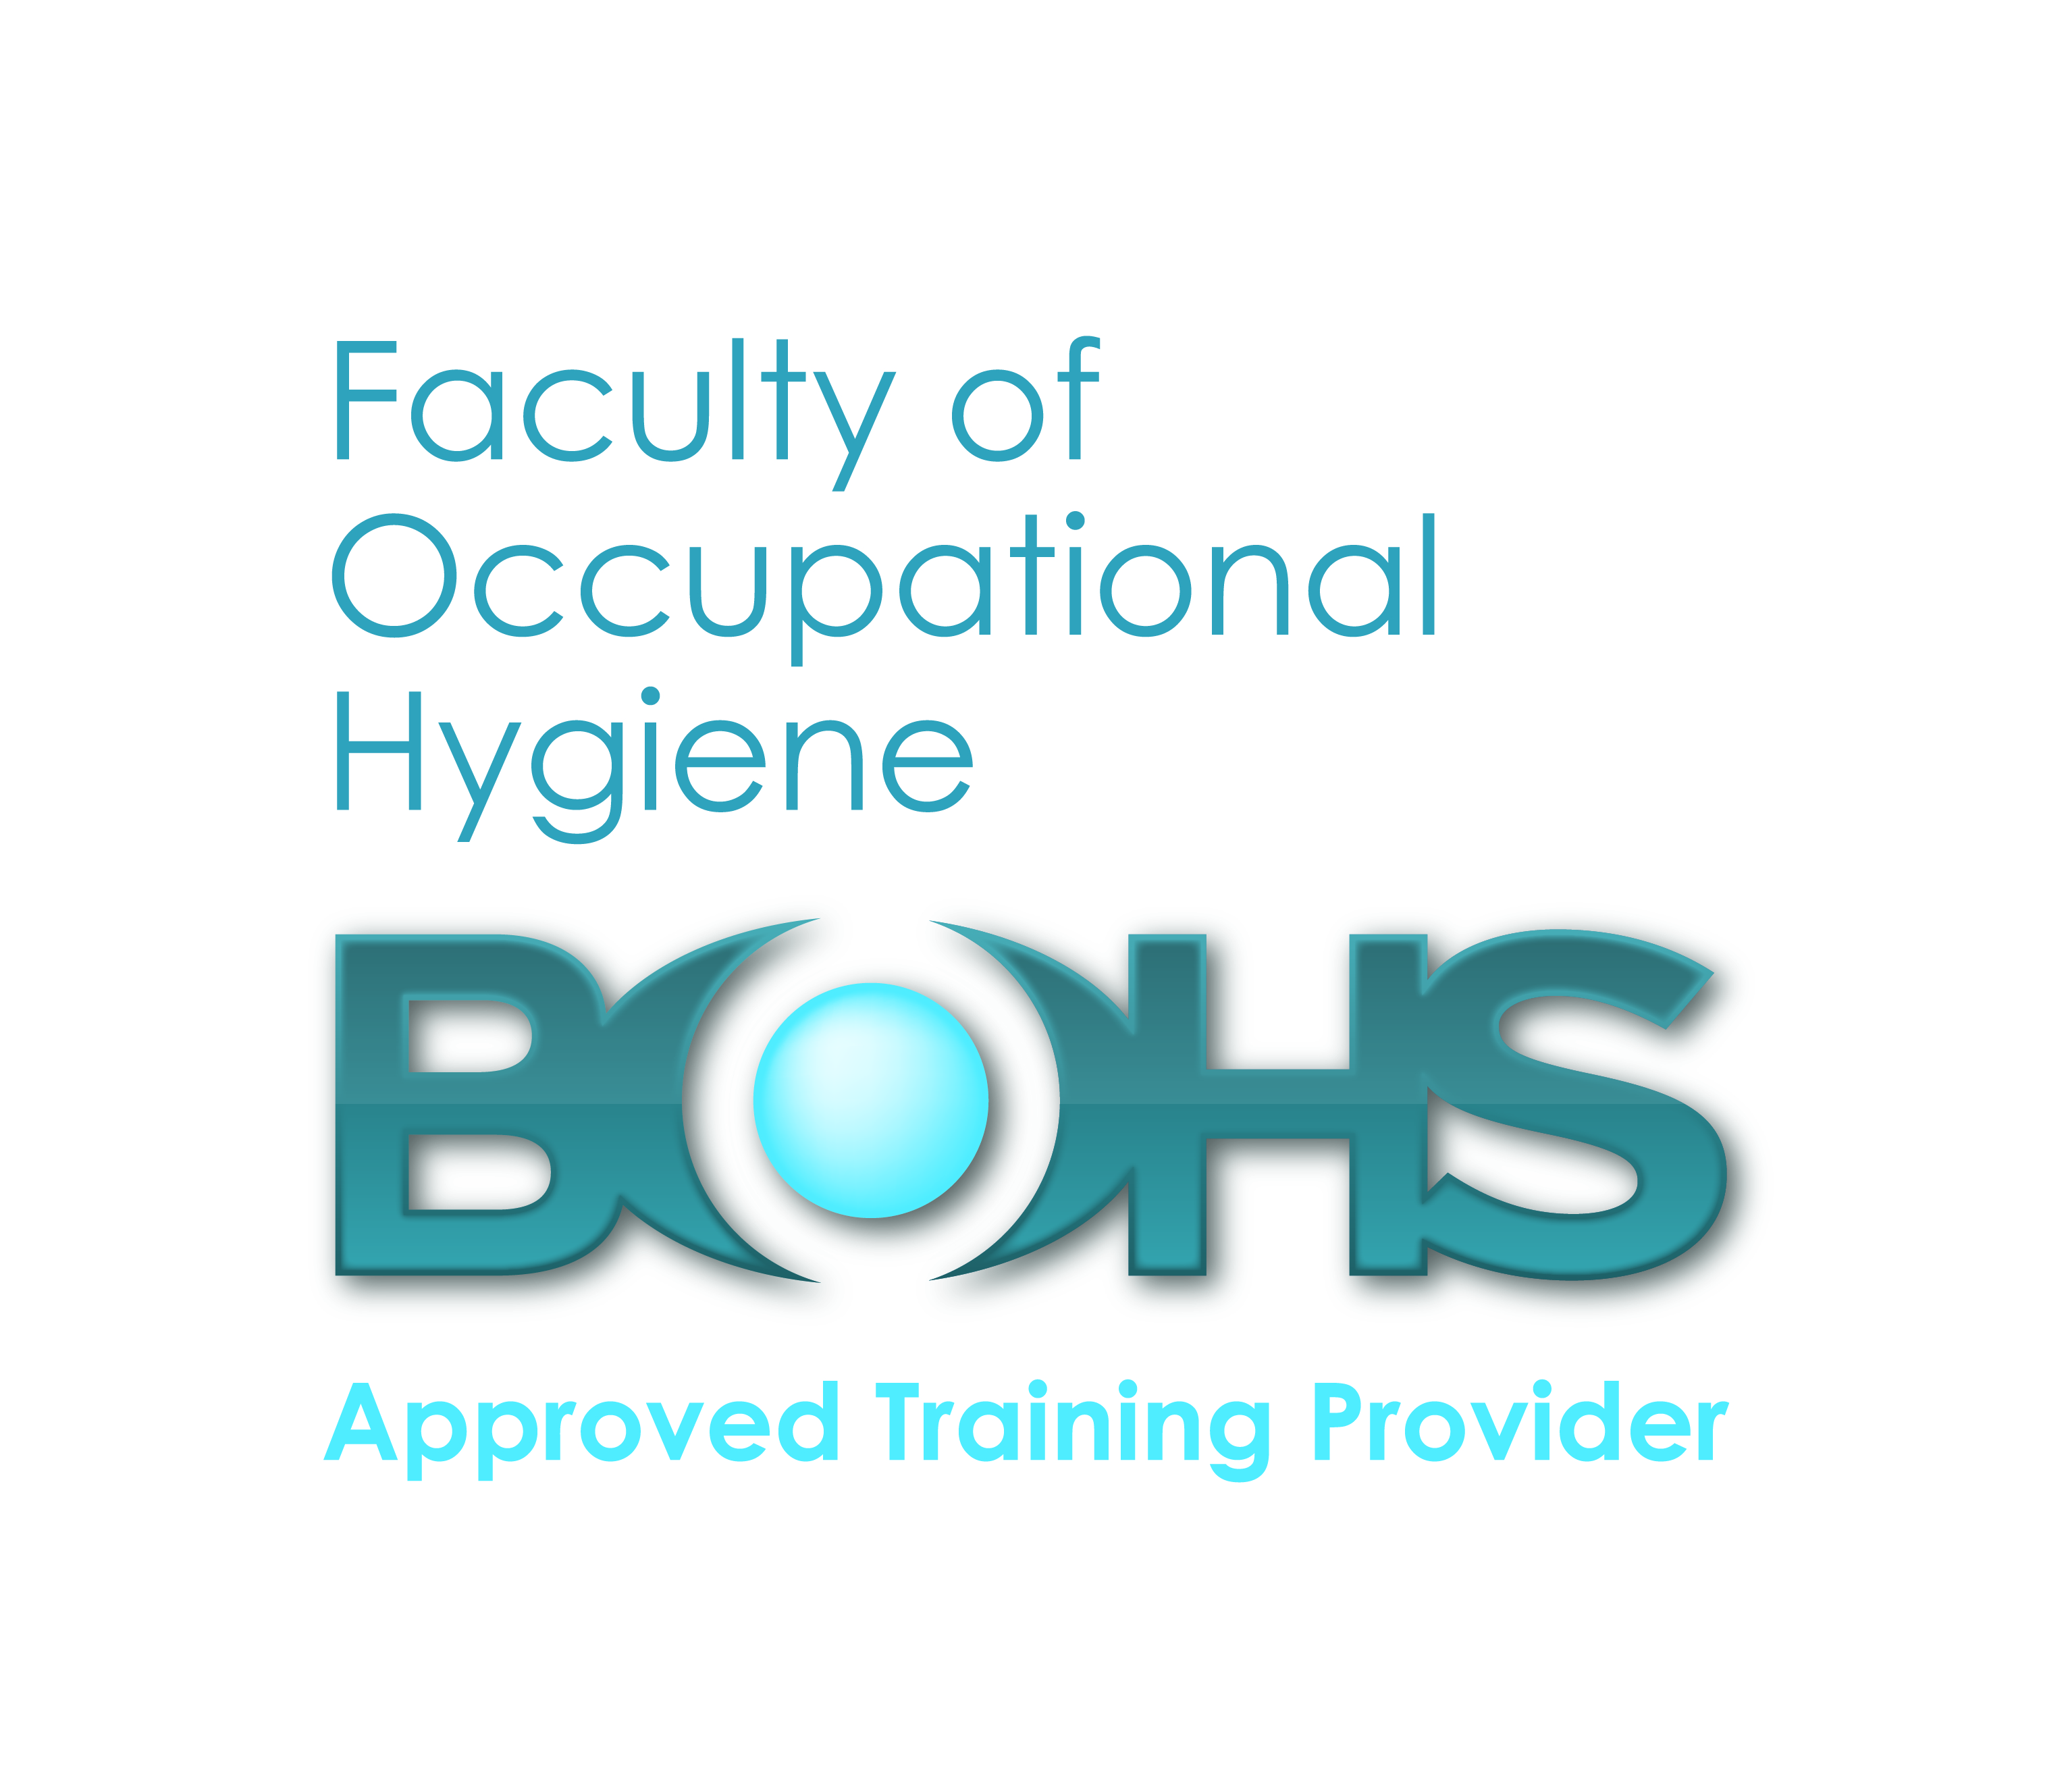 bohs p405 management of asbestos in buildings training p402 asbestos surveys buildings surveys and bulk sampling for asbestos